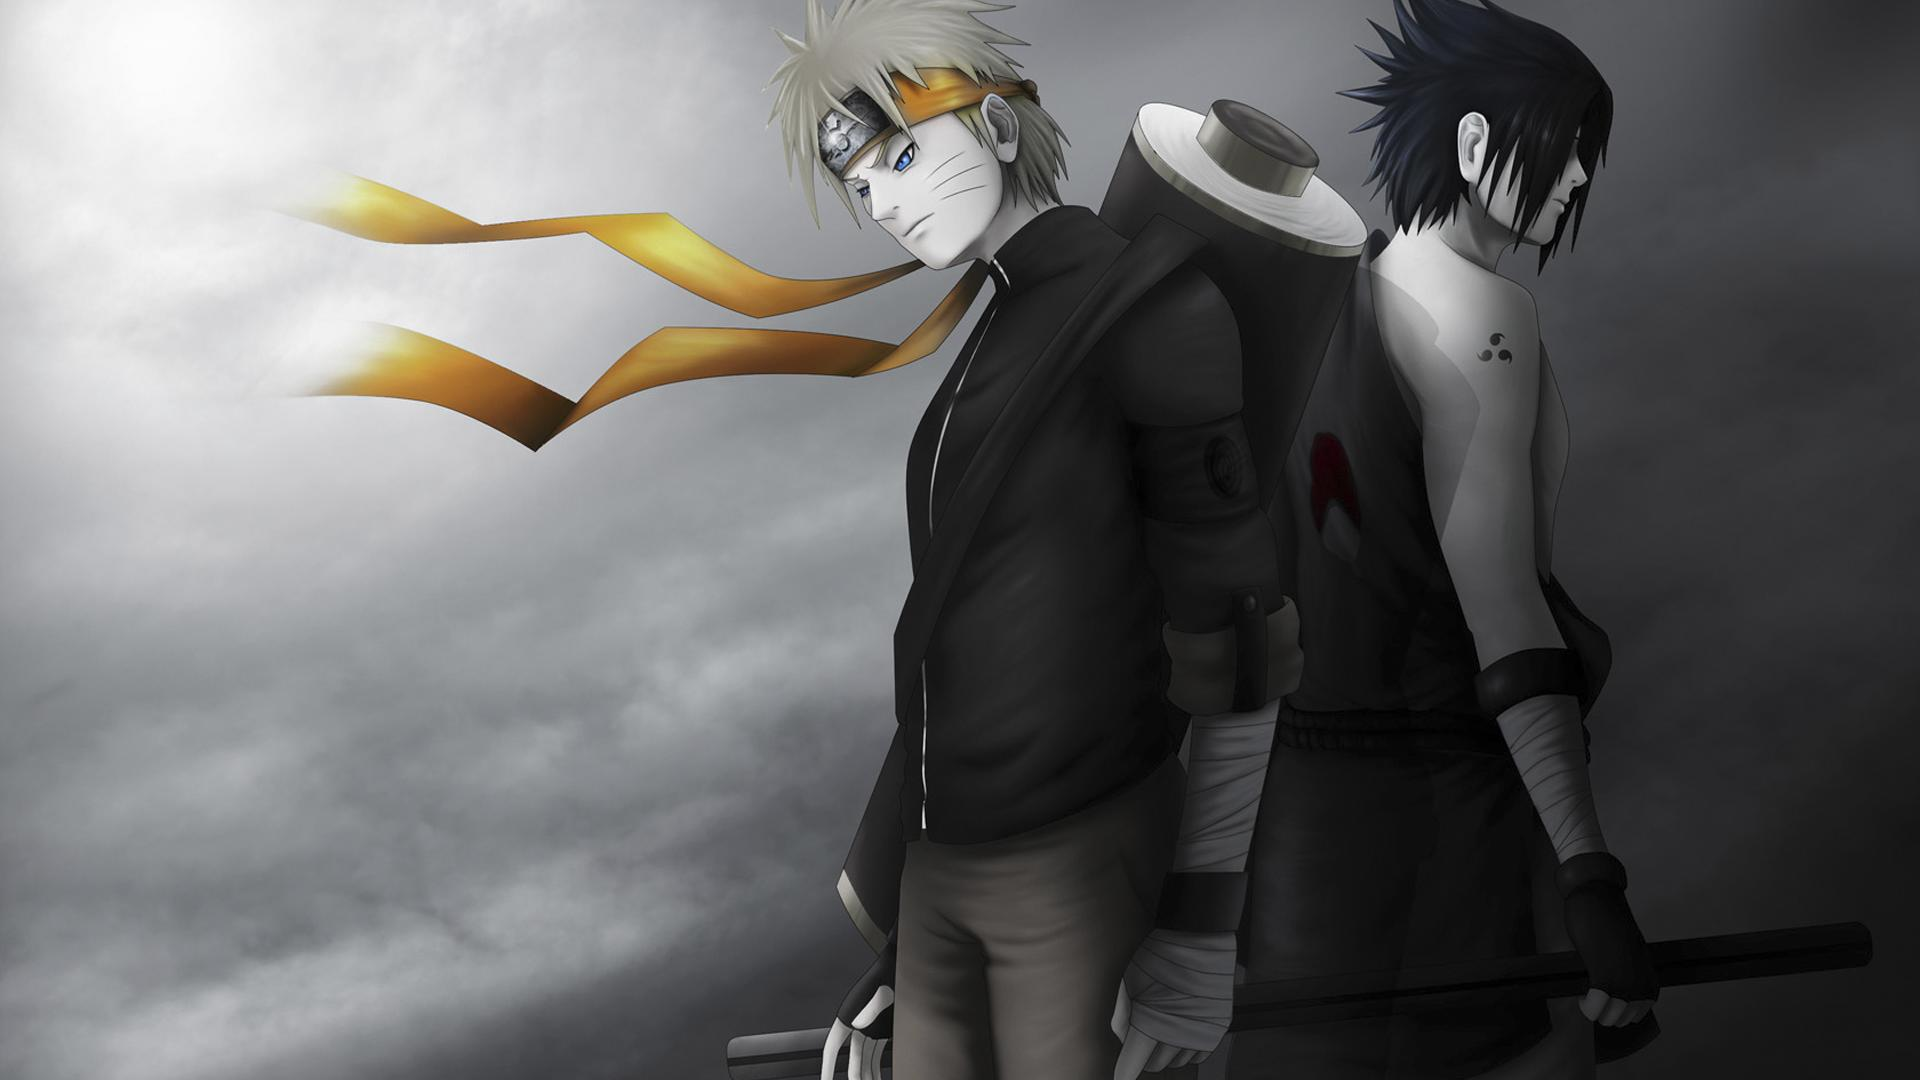 cool naruto wallpaper hd 2014 7889 603 wallpaper spotimg